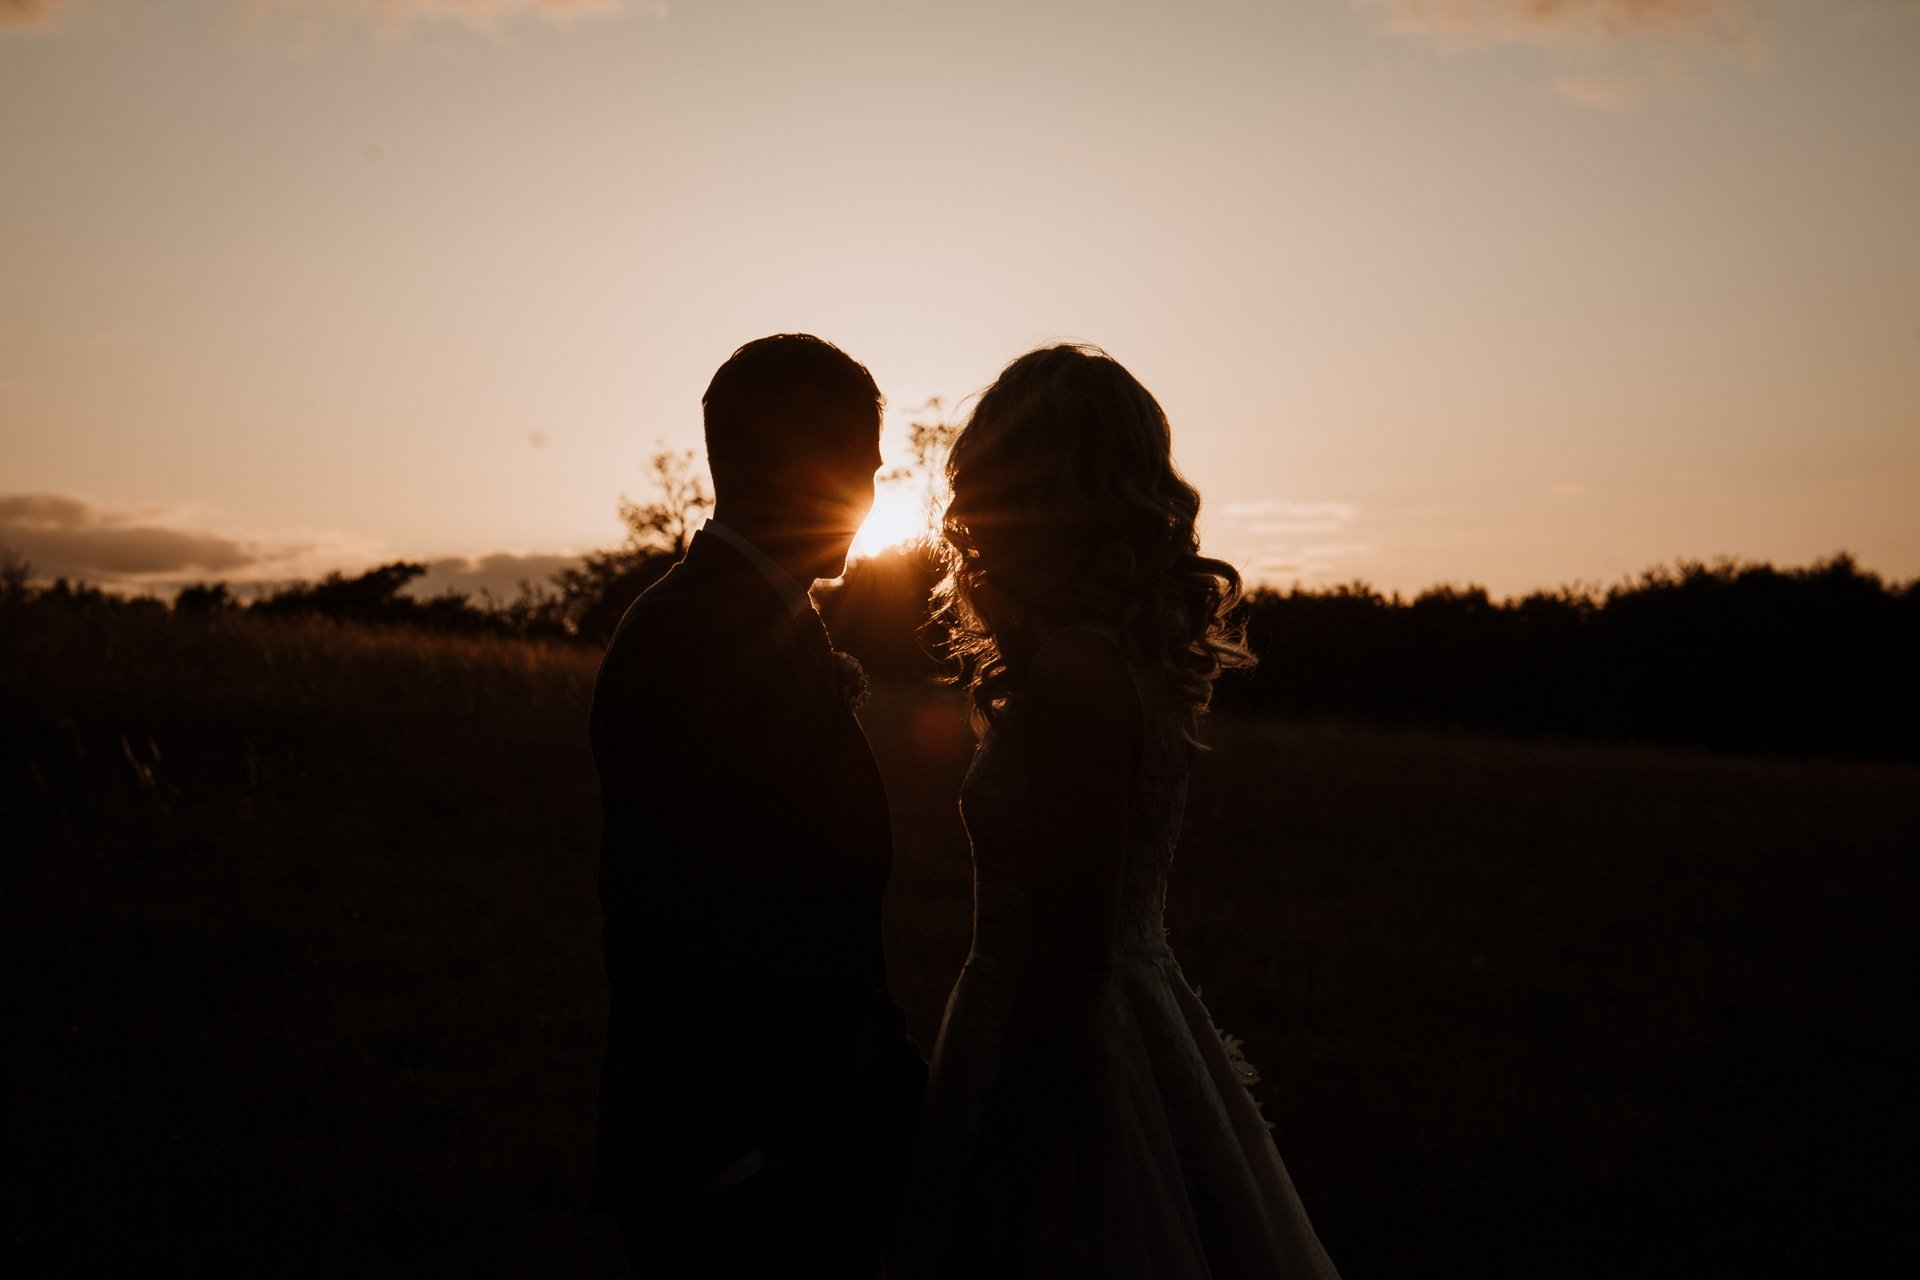 Bride and Groom looking as the sunsets on their wedding day